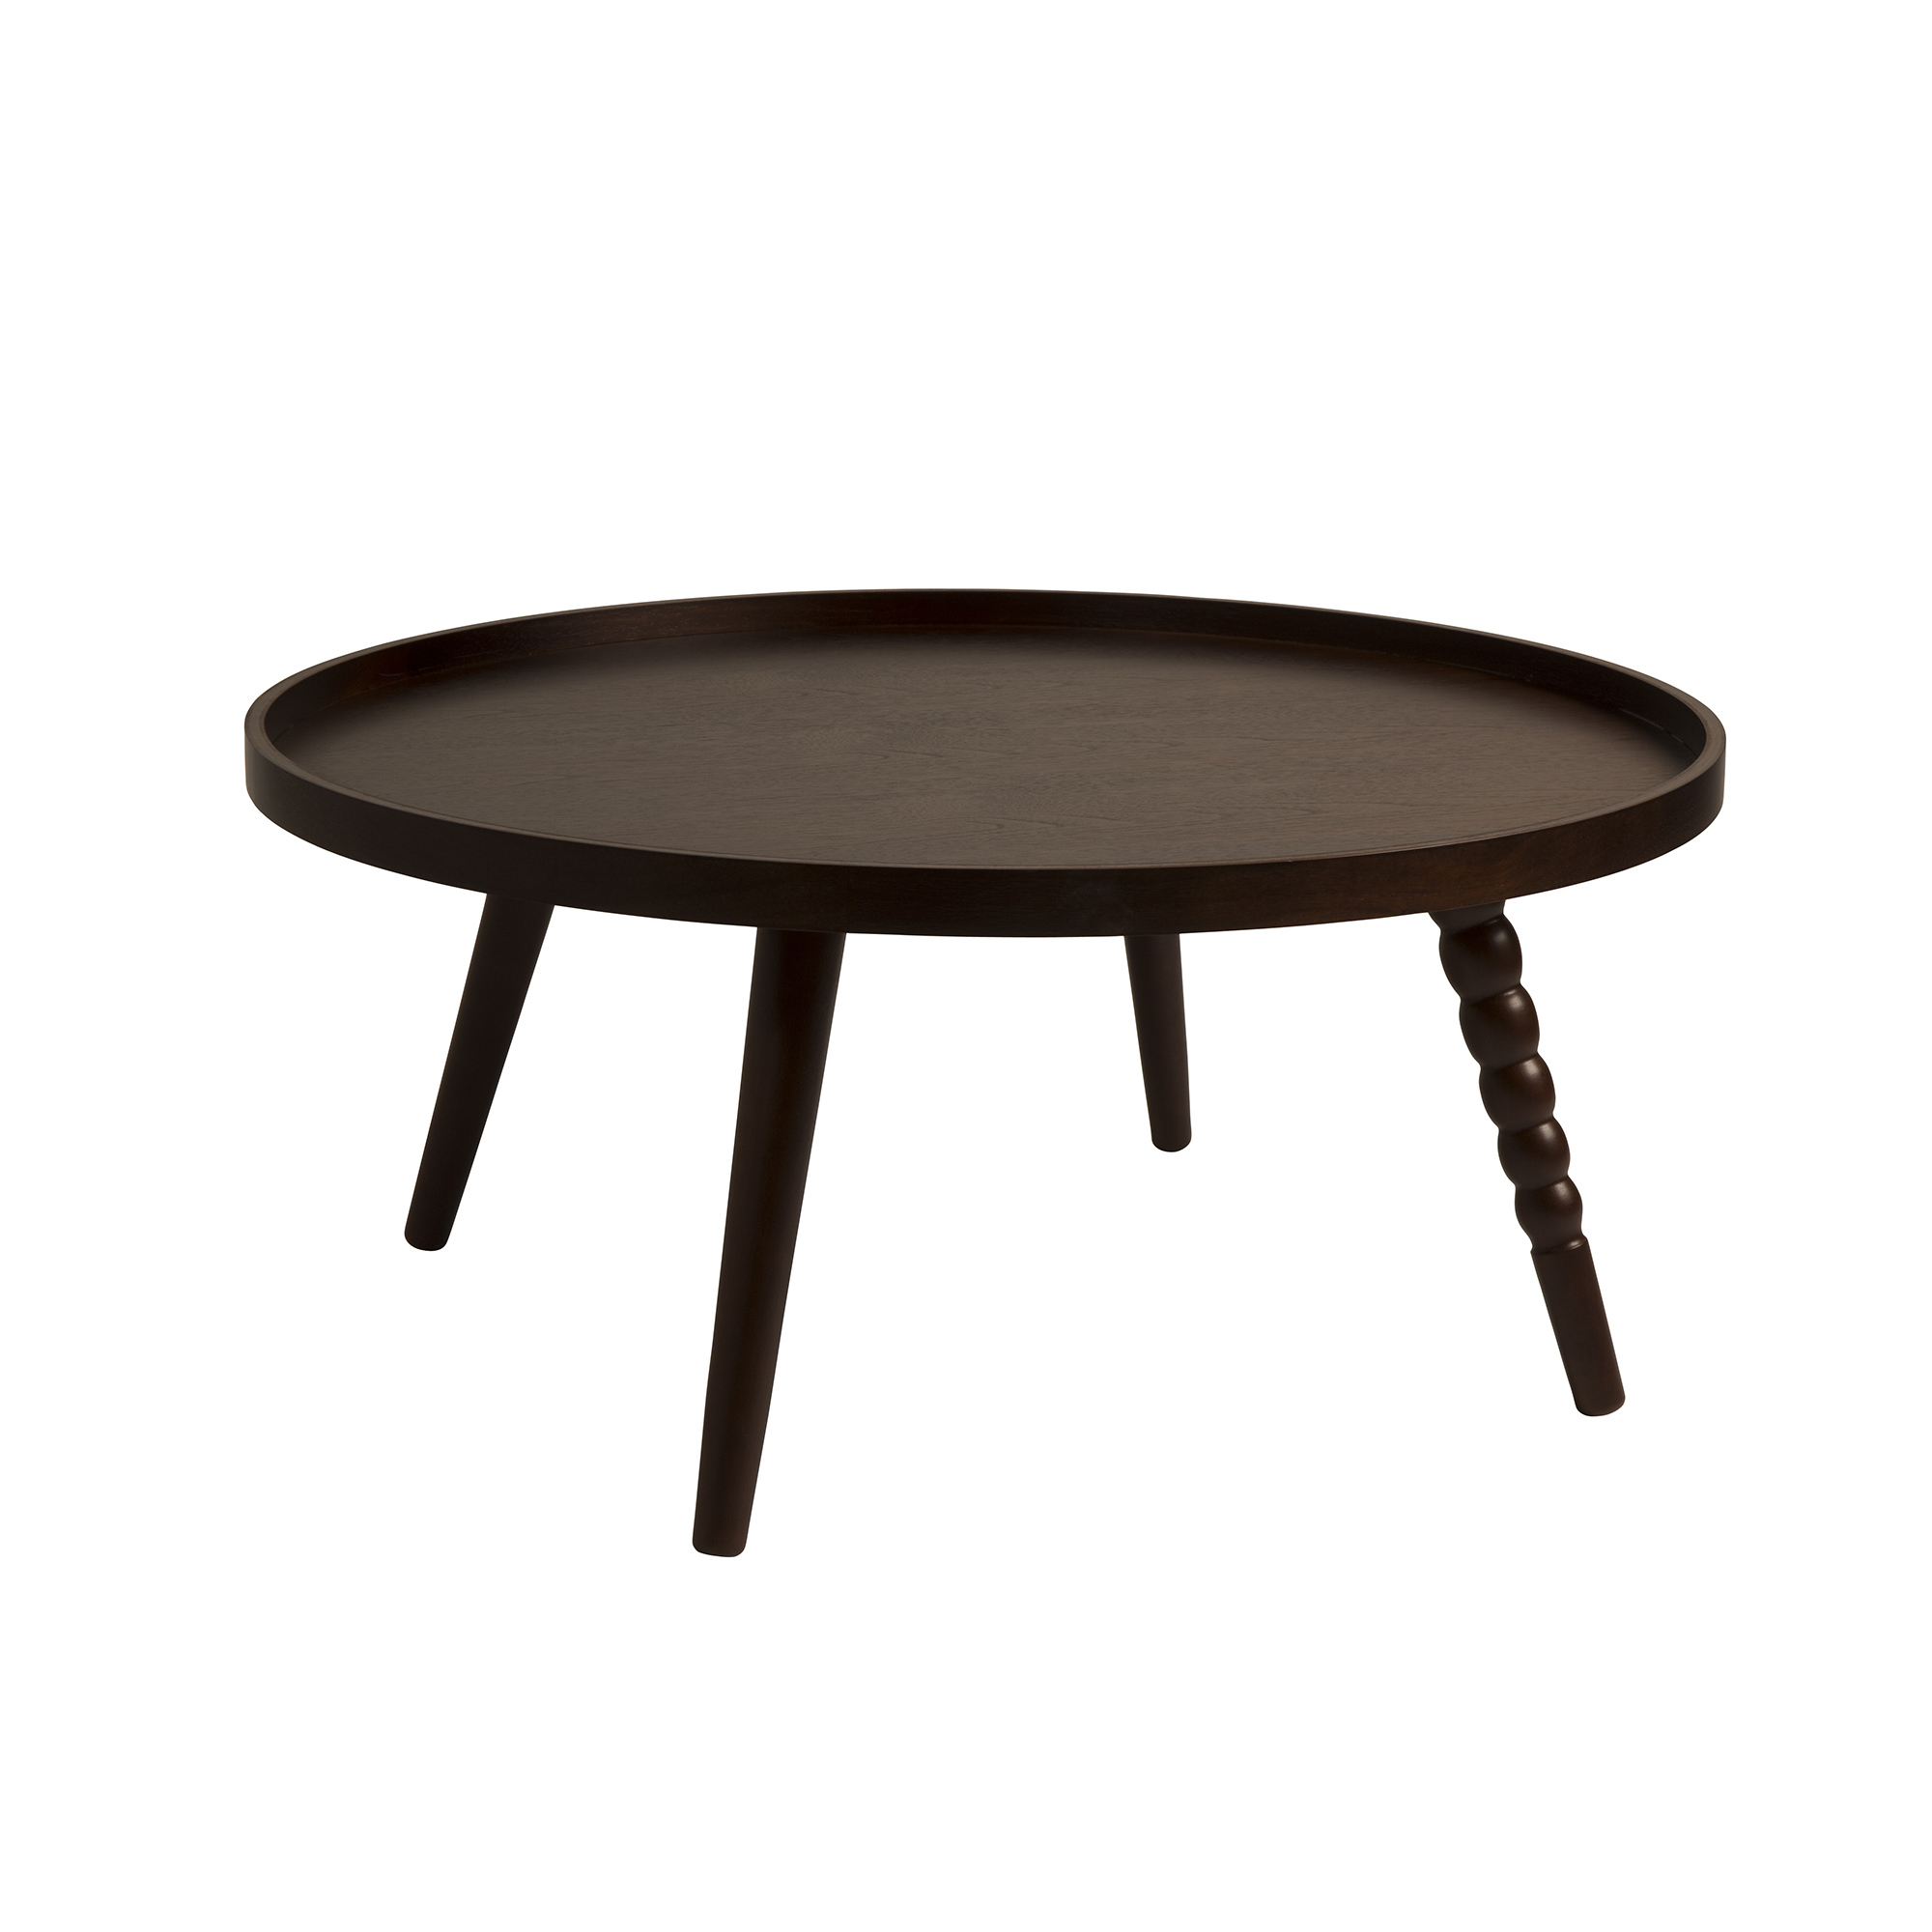 La table basse arabica ethnique chic la maison coloniale - Table basse maison coloniale ...